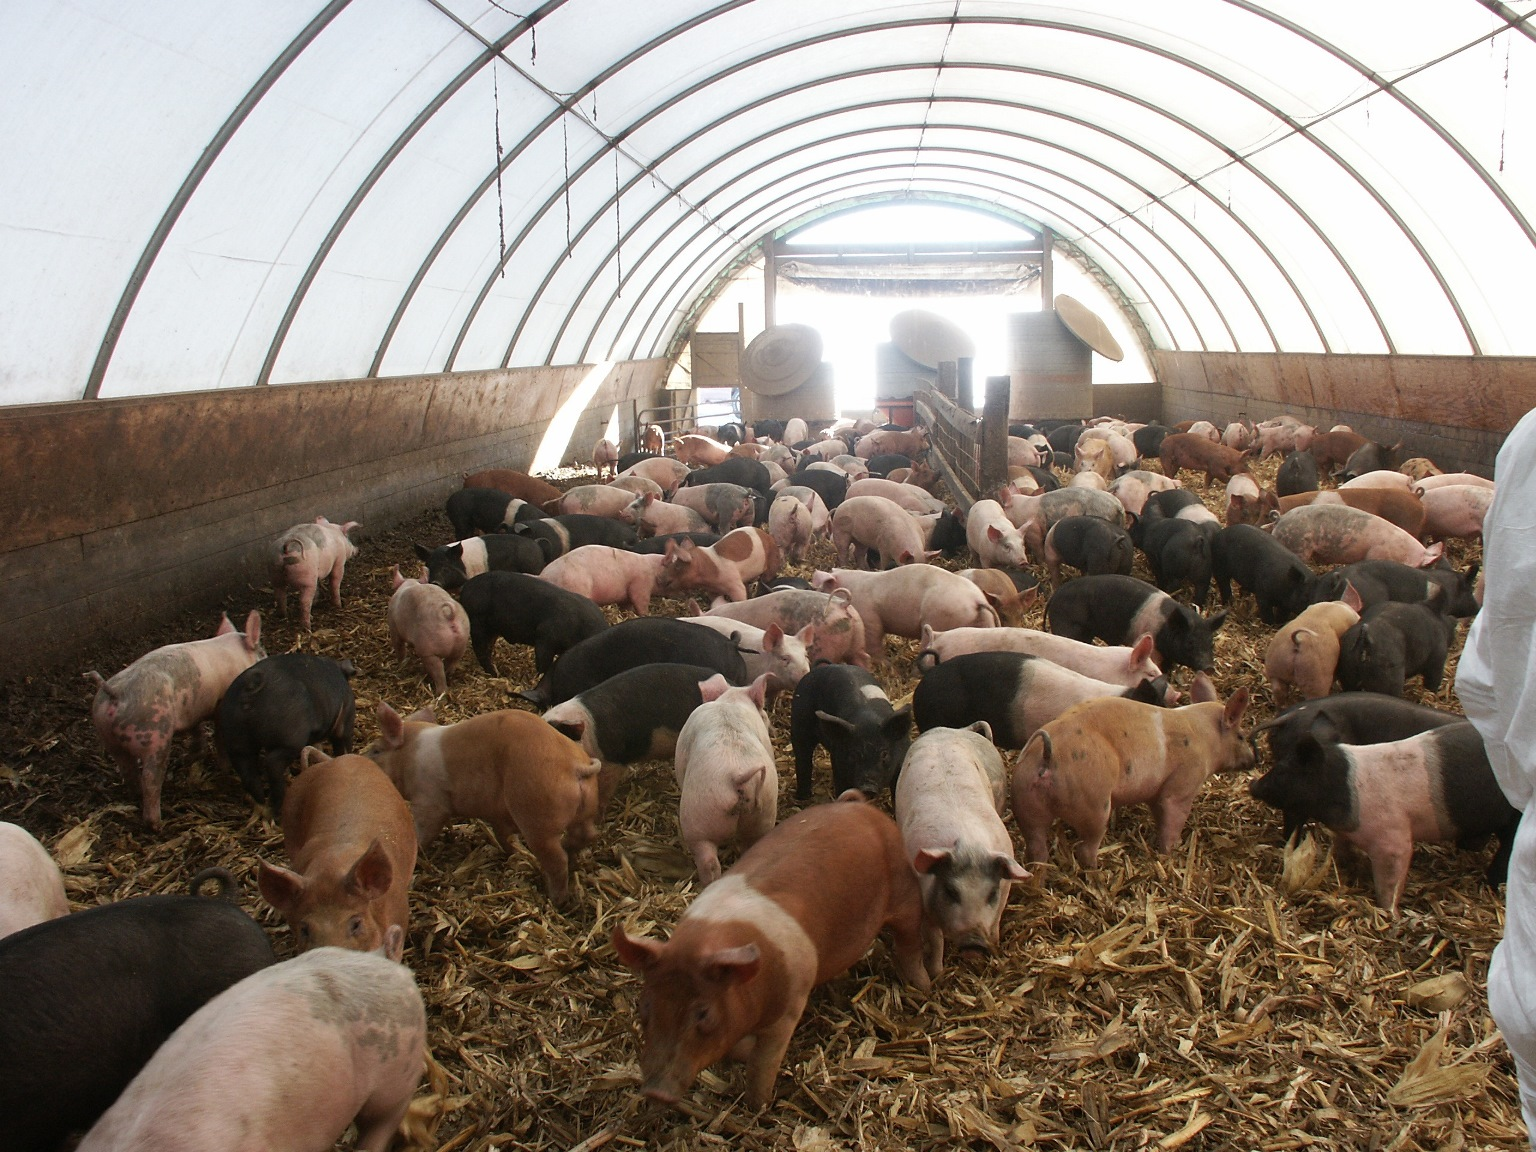 Code of Practice for the Care and Handling of Pigs